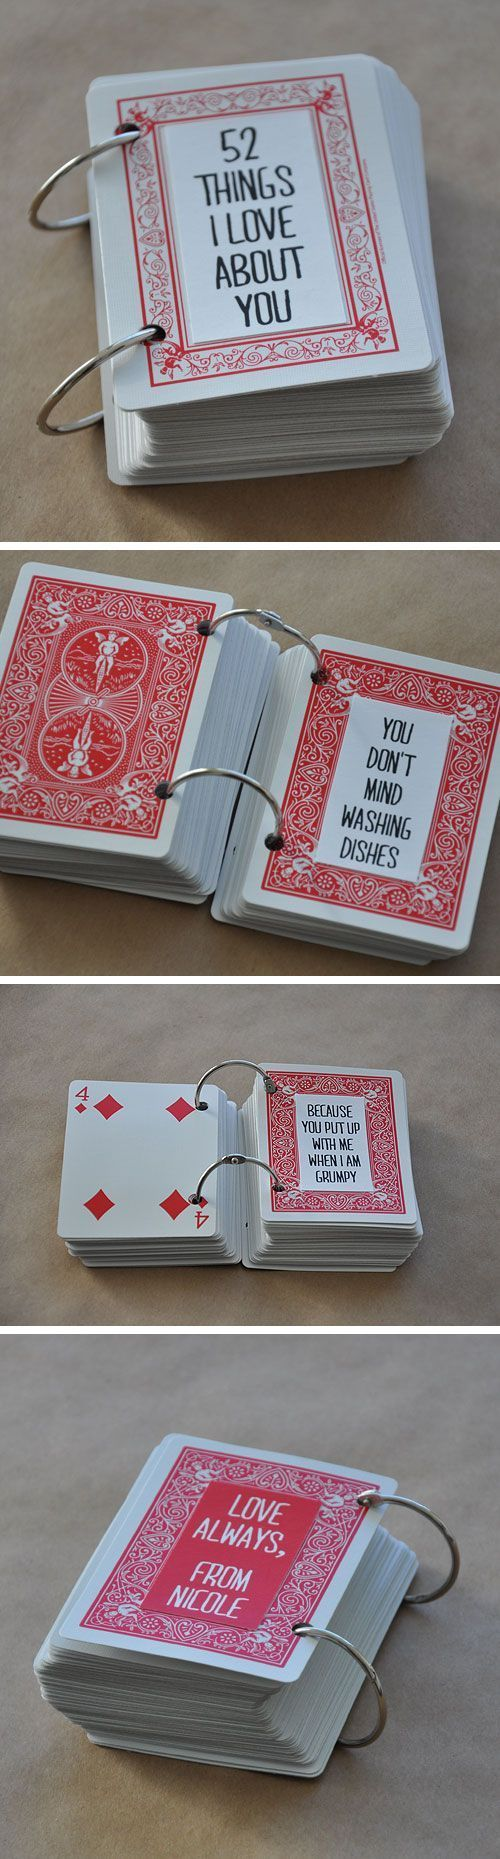 52 Things Card Deck | 22 Homemade Christmas Gifts Men Will Actually Love | Cool And Creative DIY Gifts by Pioneer Settler at http://pioneersettler.com/22-homemade-christmas-gifts-men-will-actually-love/